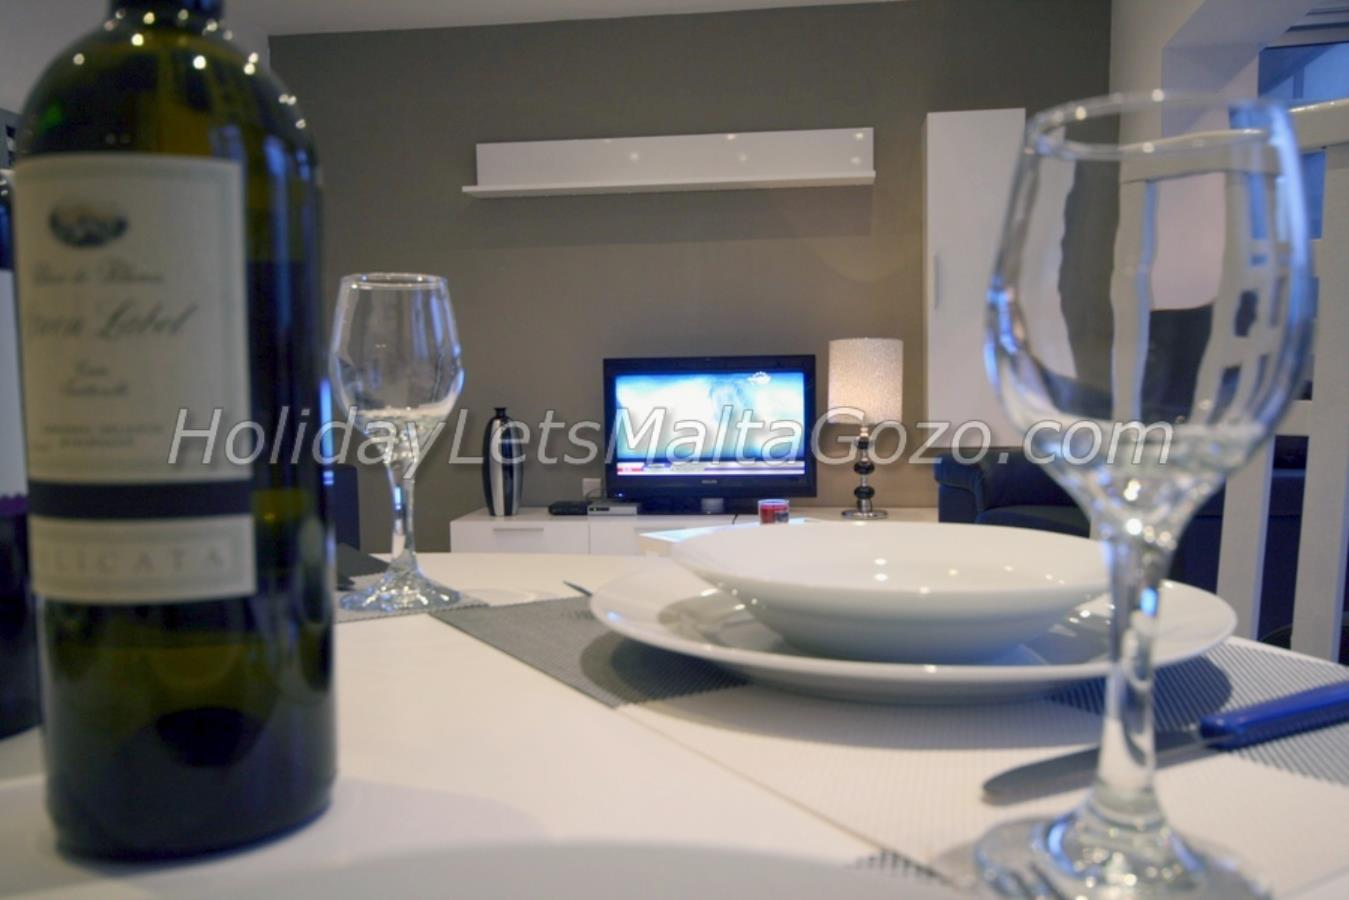 Dining tabla view to TV